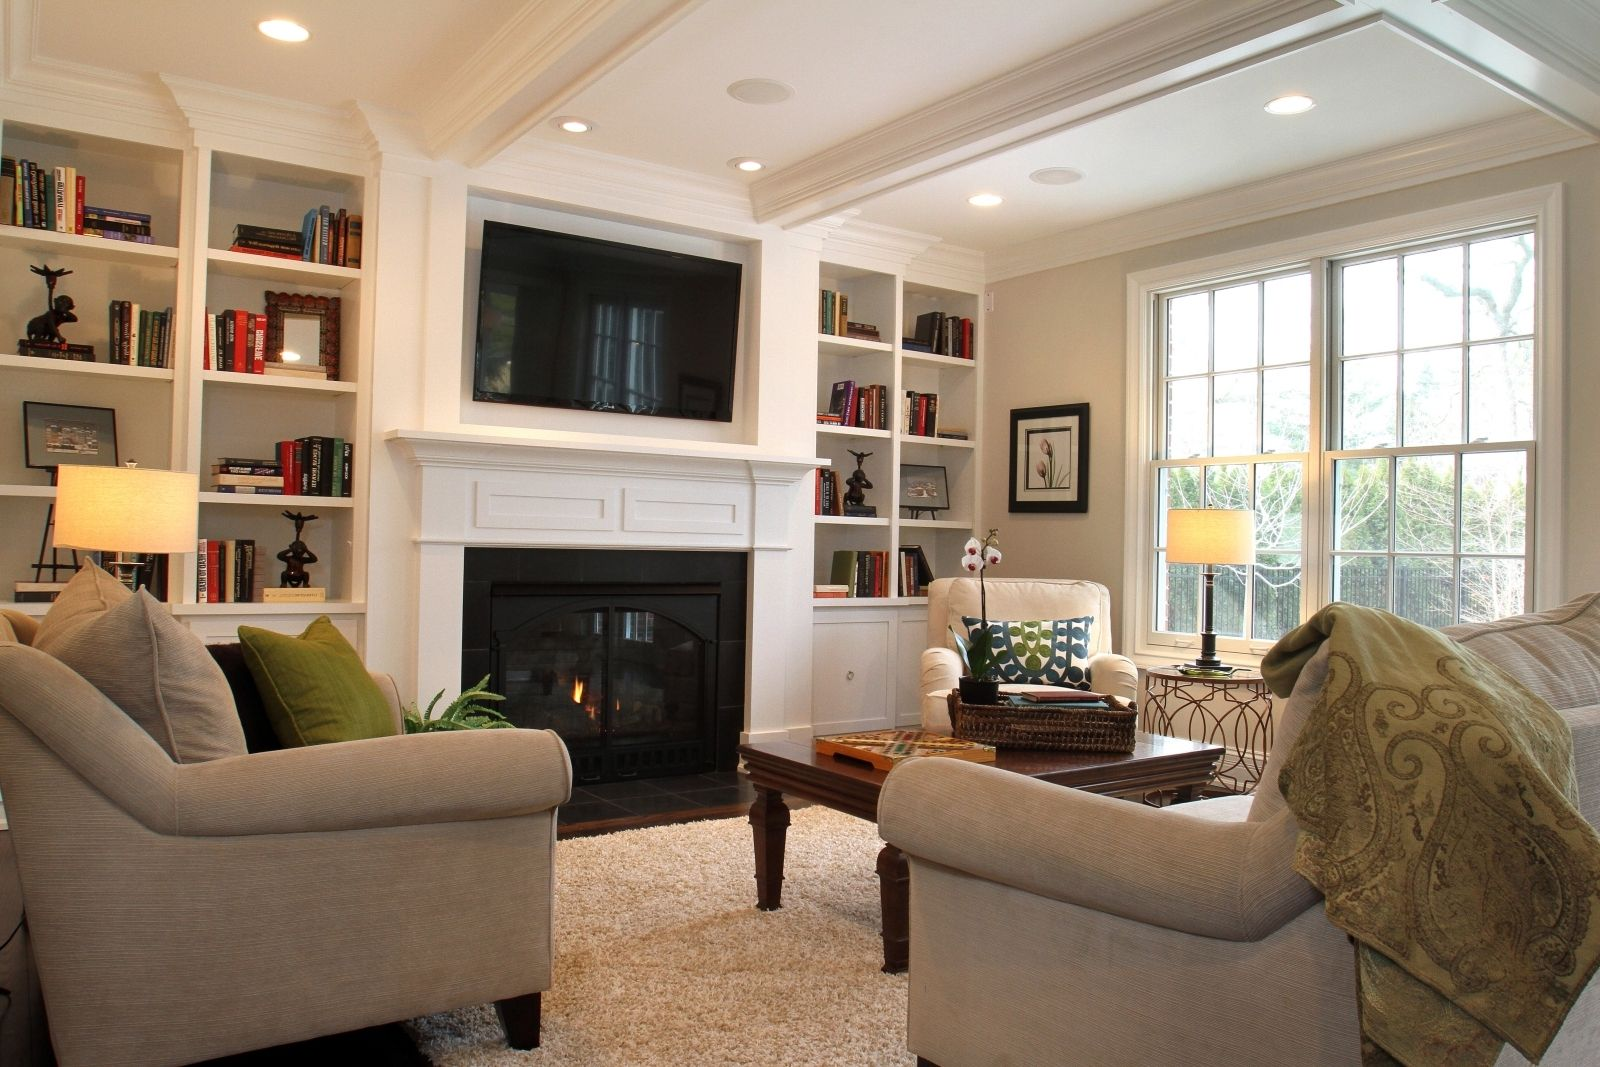 Pin By Firdes On Living Room Small Family Room Family Room Layout Family Room Decorating